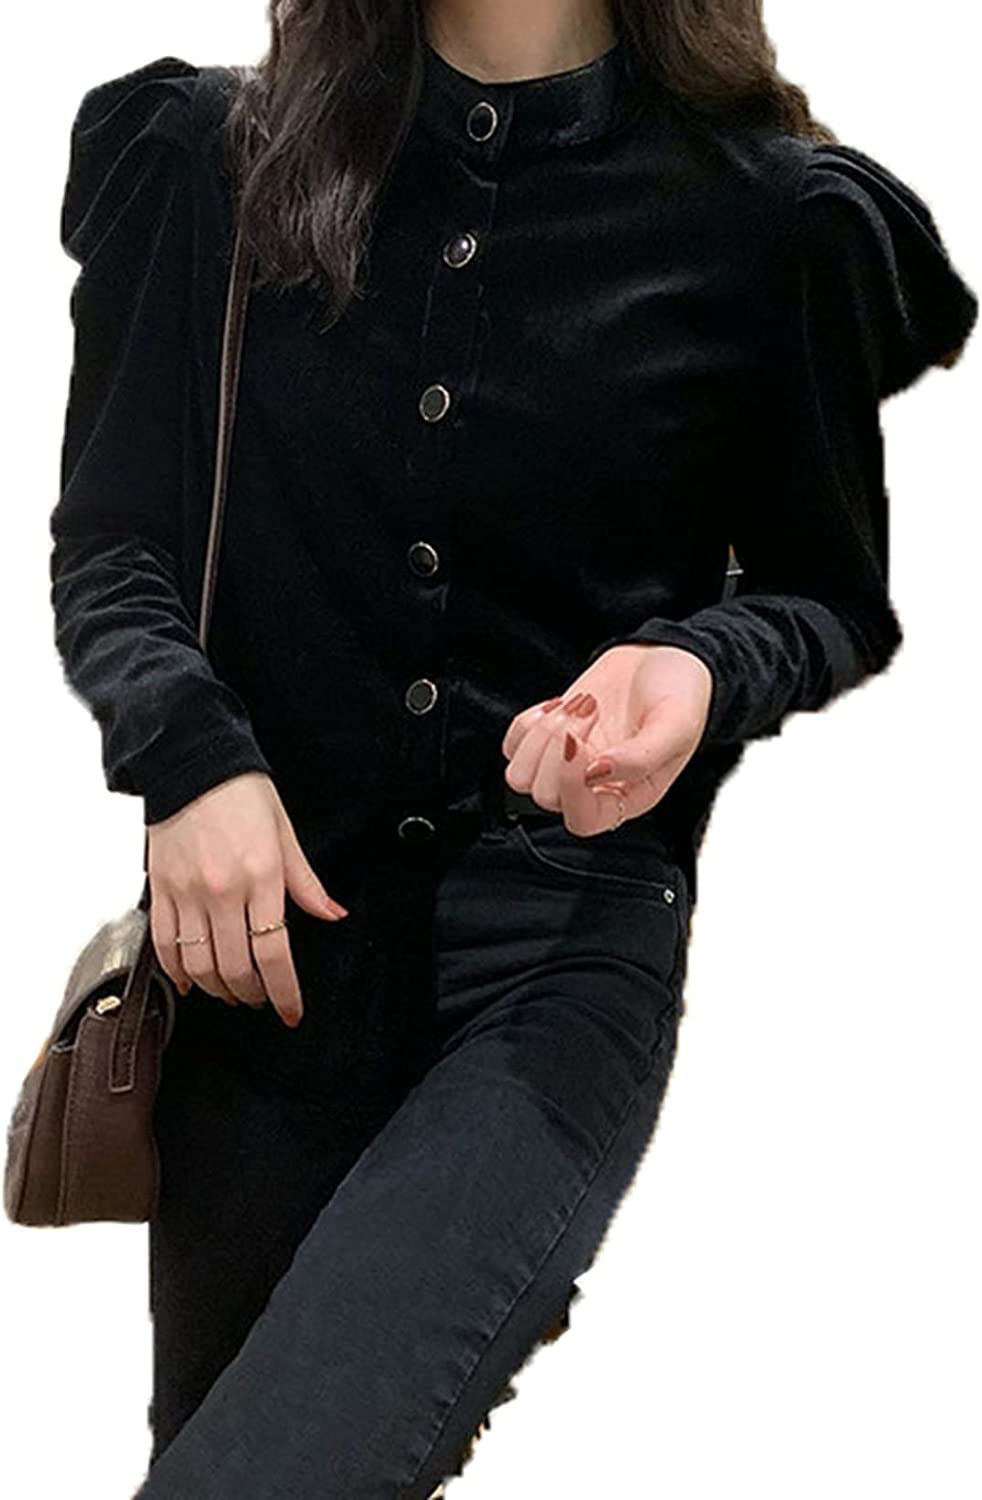 Ladies Shirts Breathable Office Puff Max Time sale 75% OFF C Baggy Sleeve Women's Tops